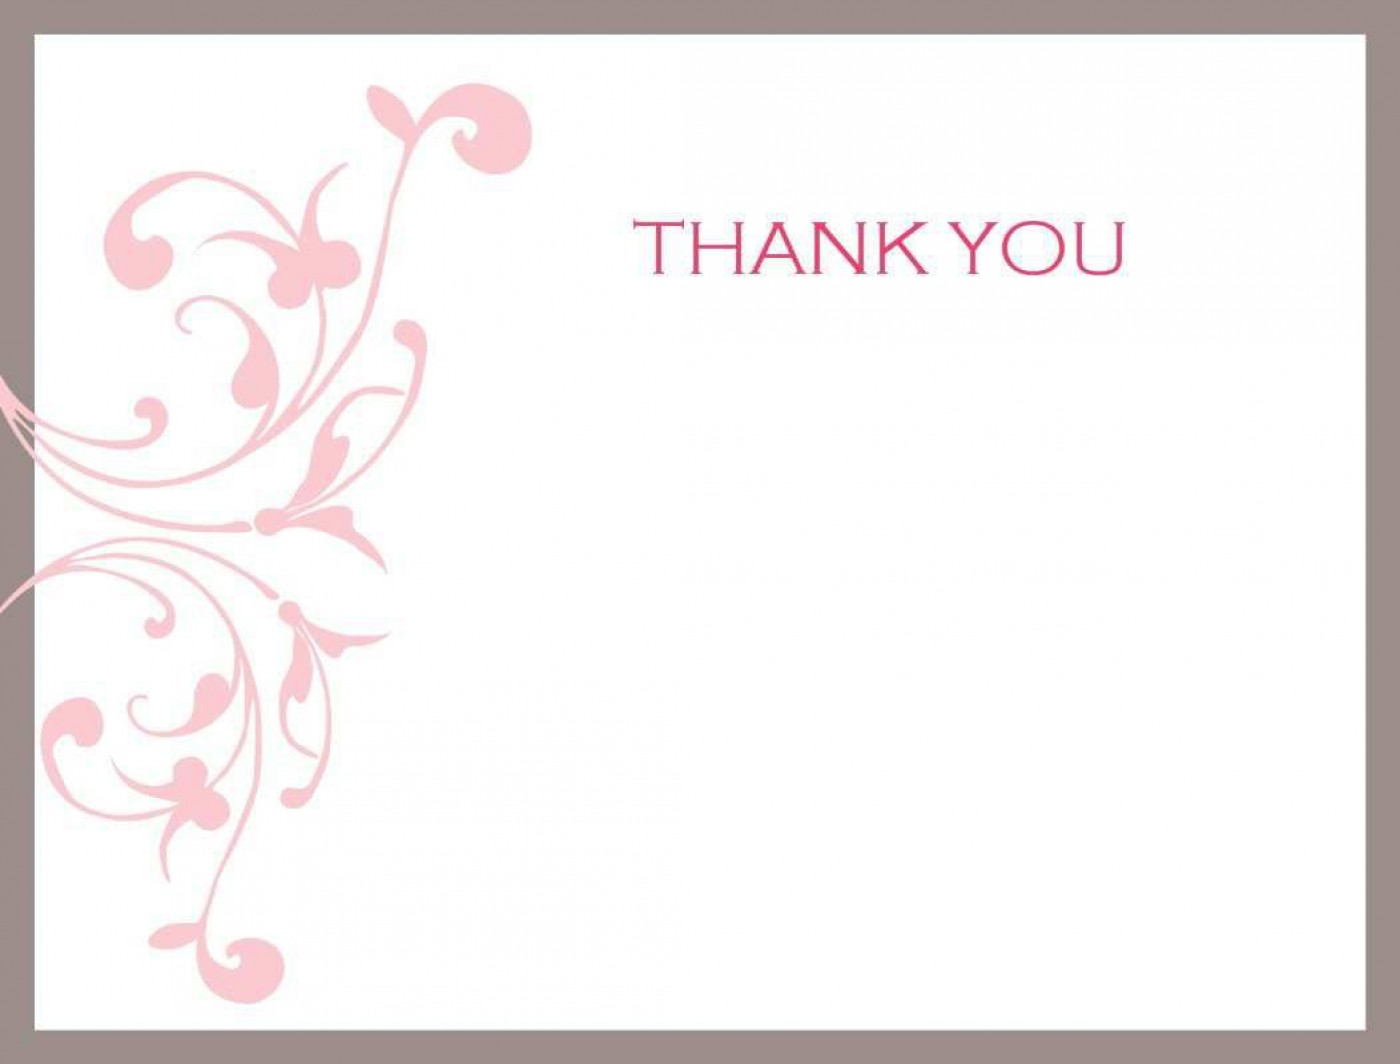 007 Unforgettable Thank You Note Card Template Word Sample 1400